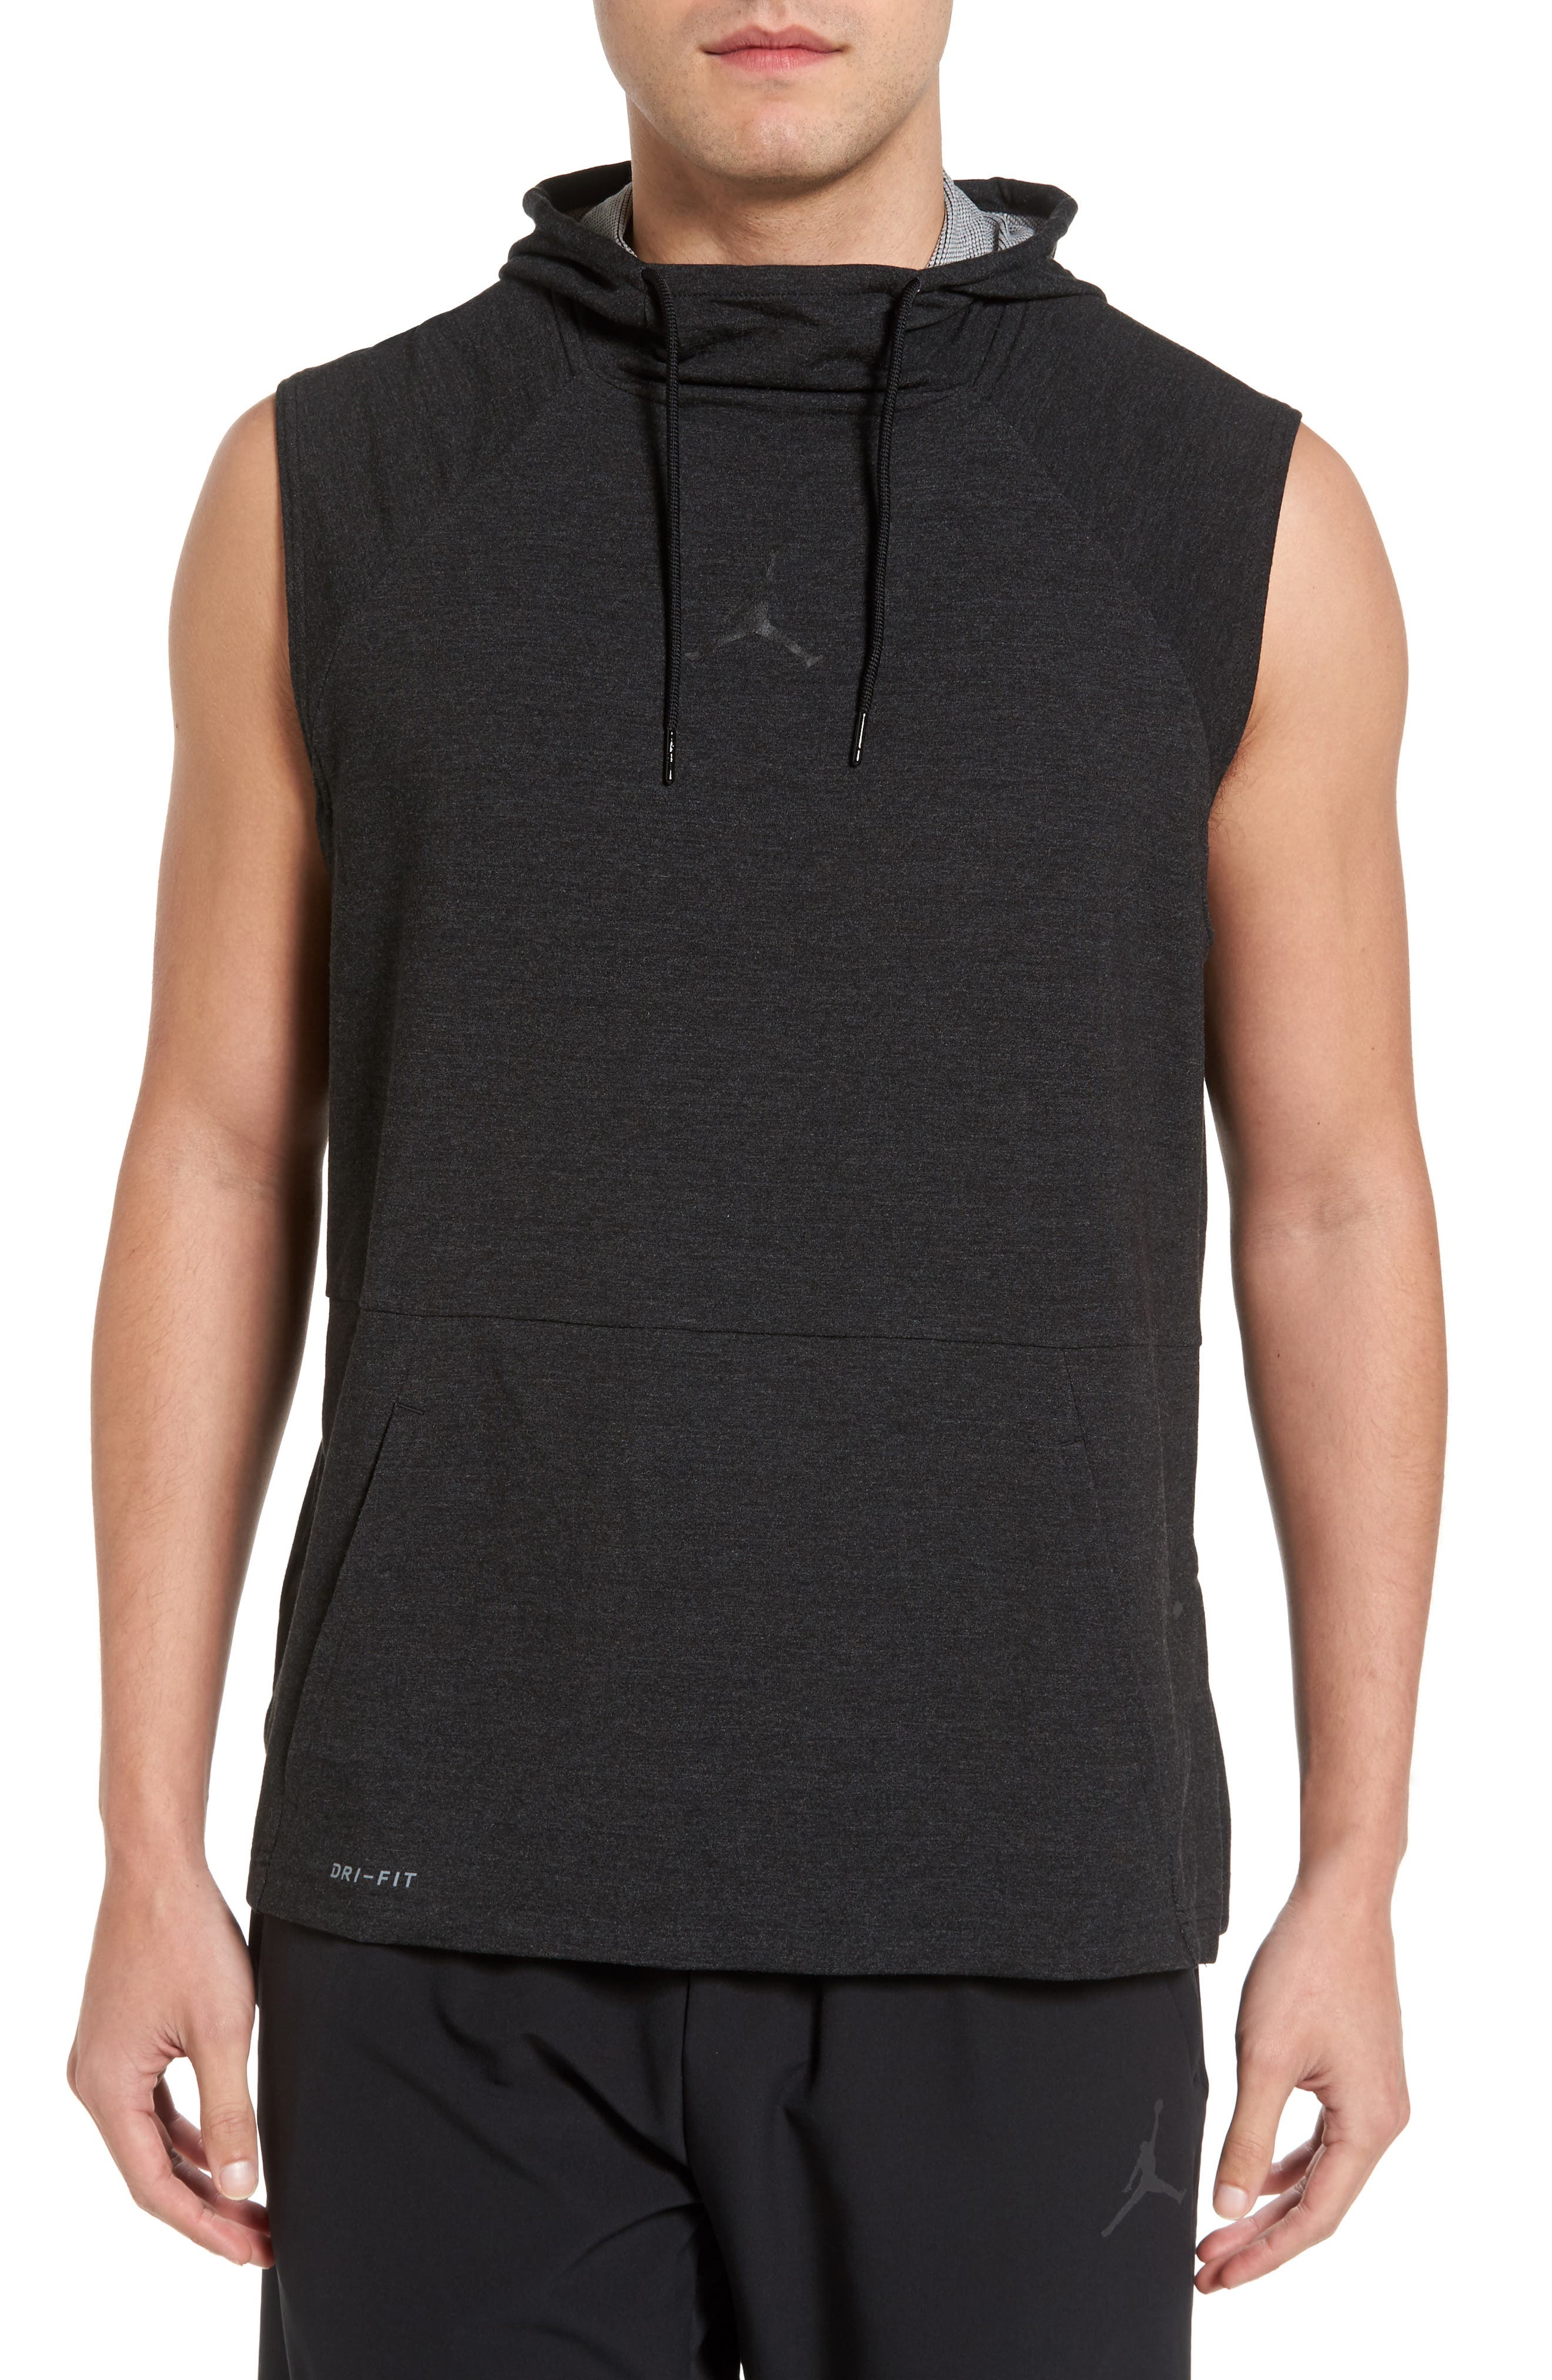 23 Tech Sphere Sleeveless Training Hoodie,                         Main,                         color, 010